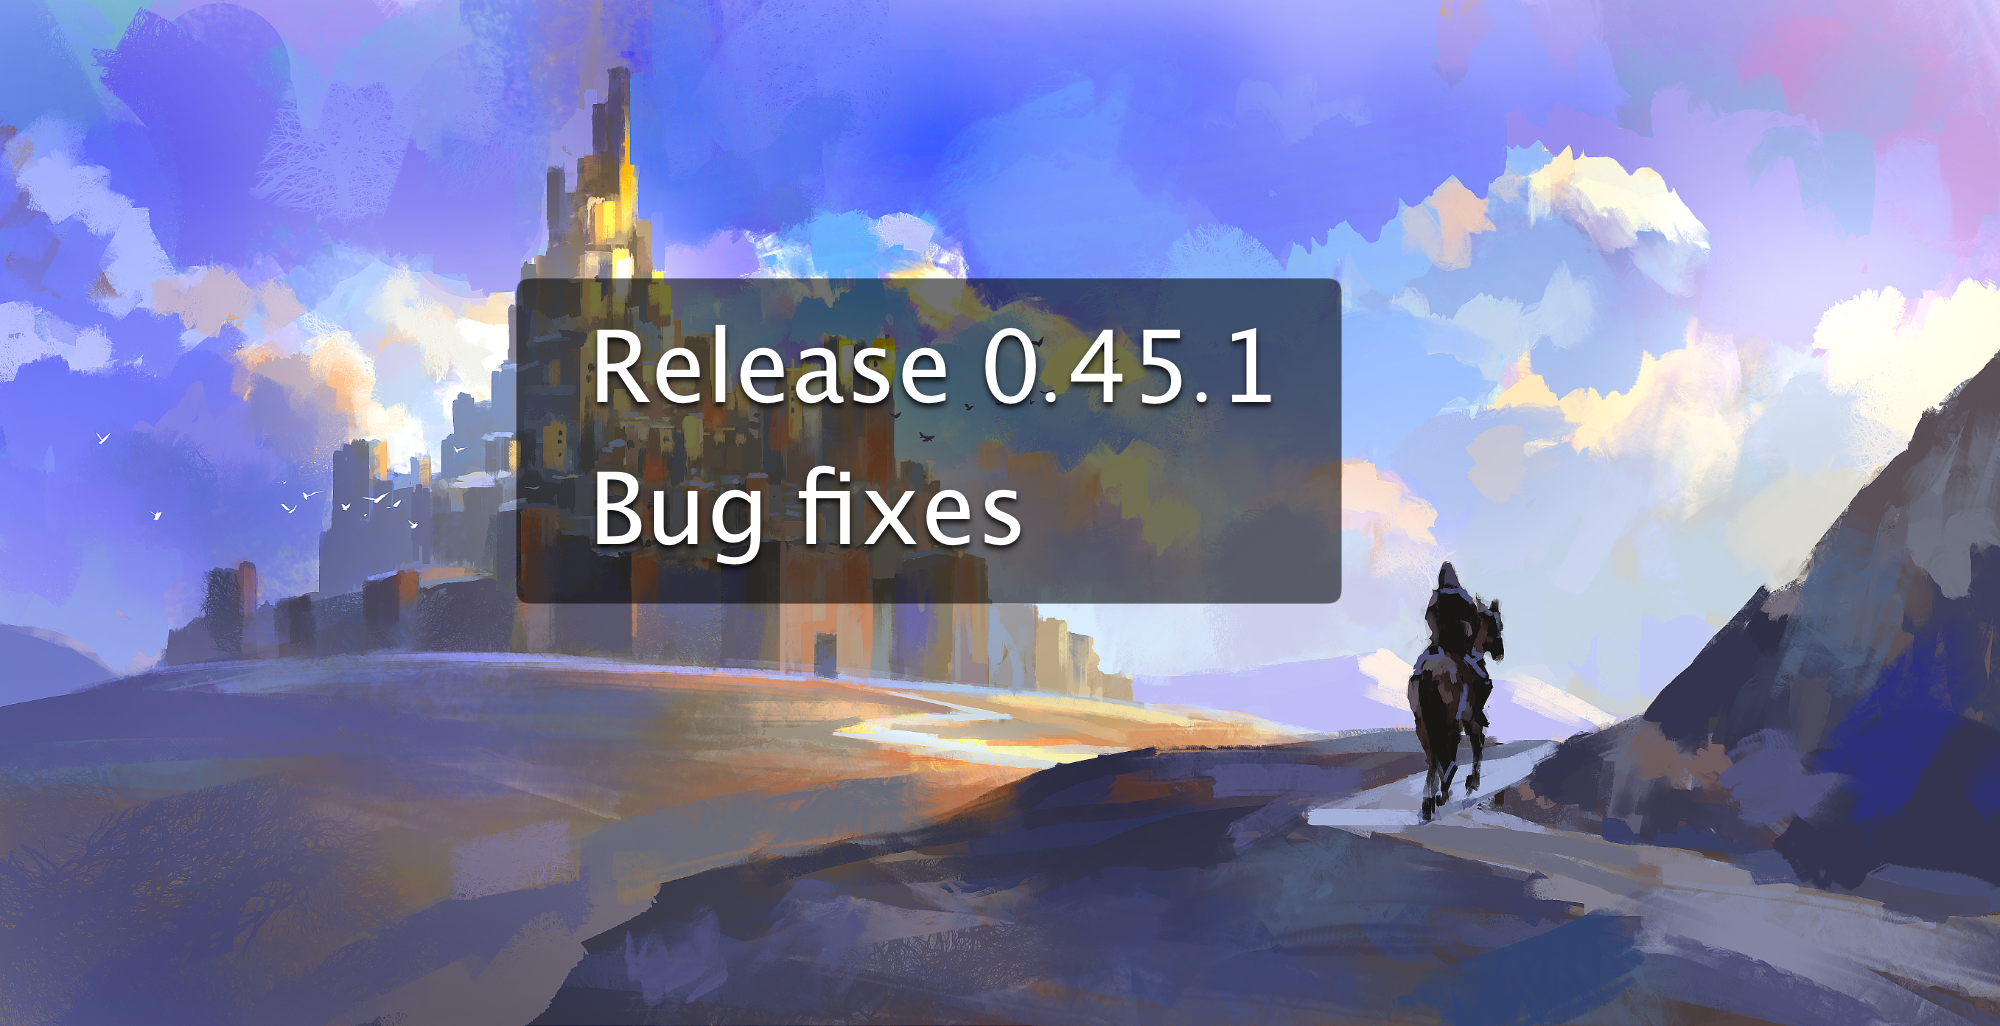 Release 0.45.1